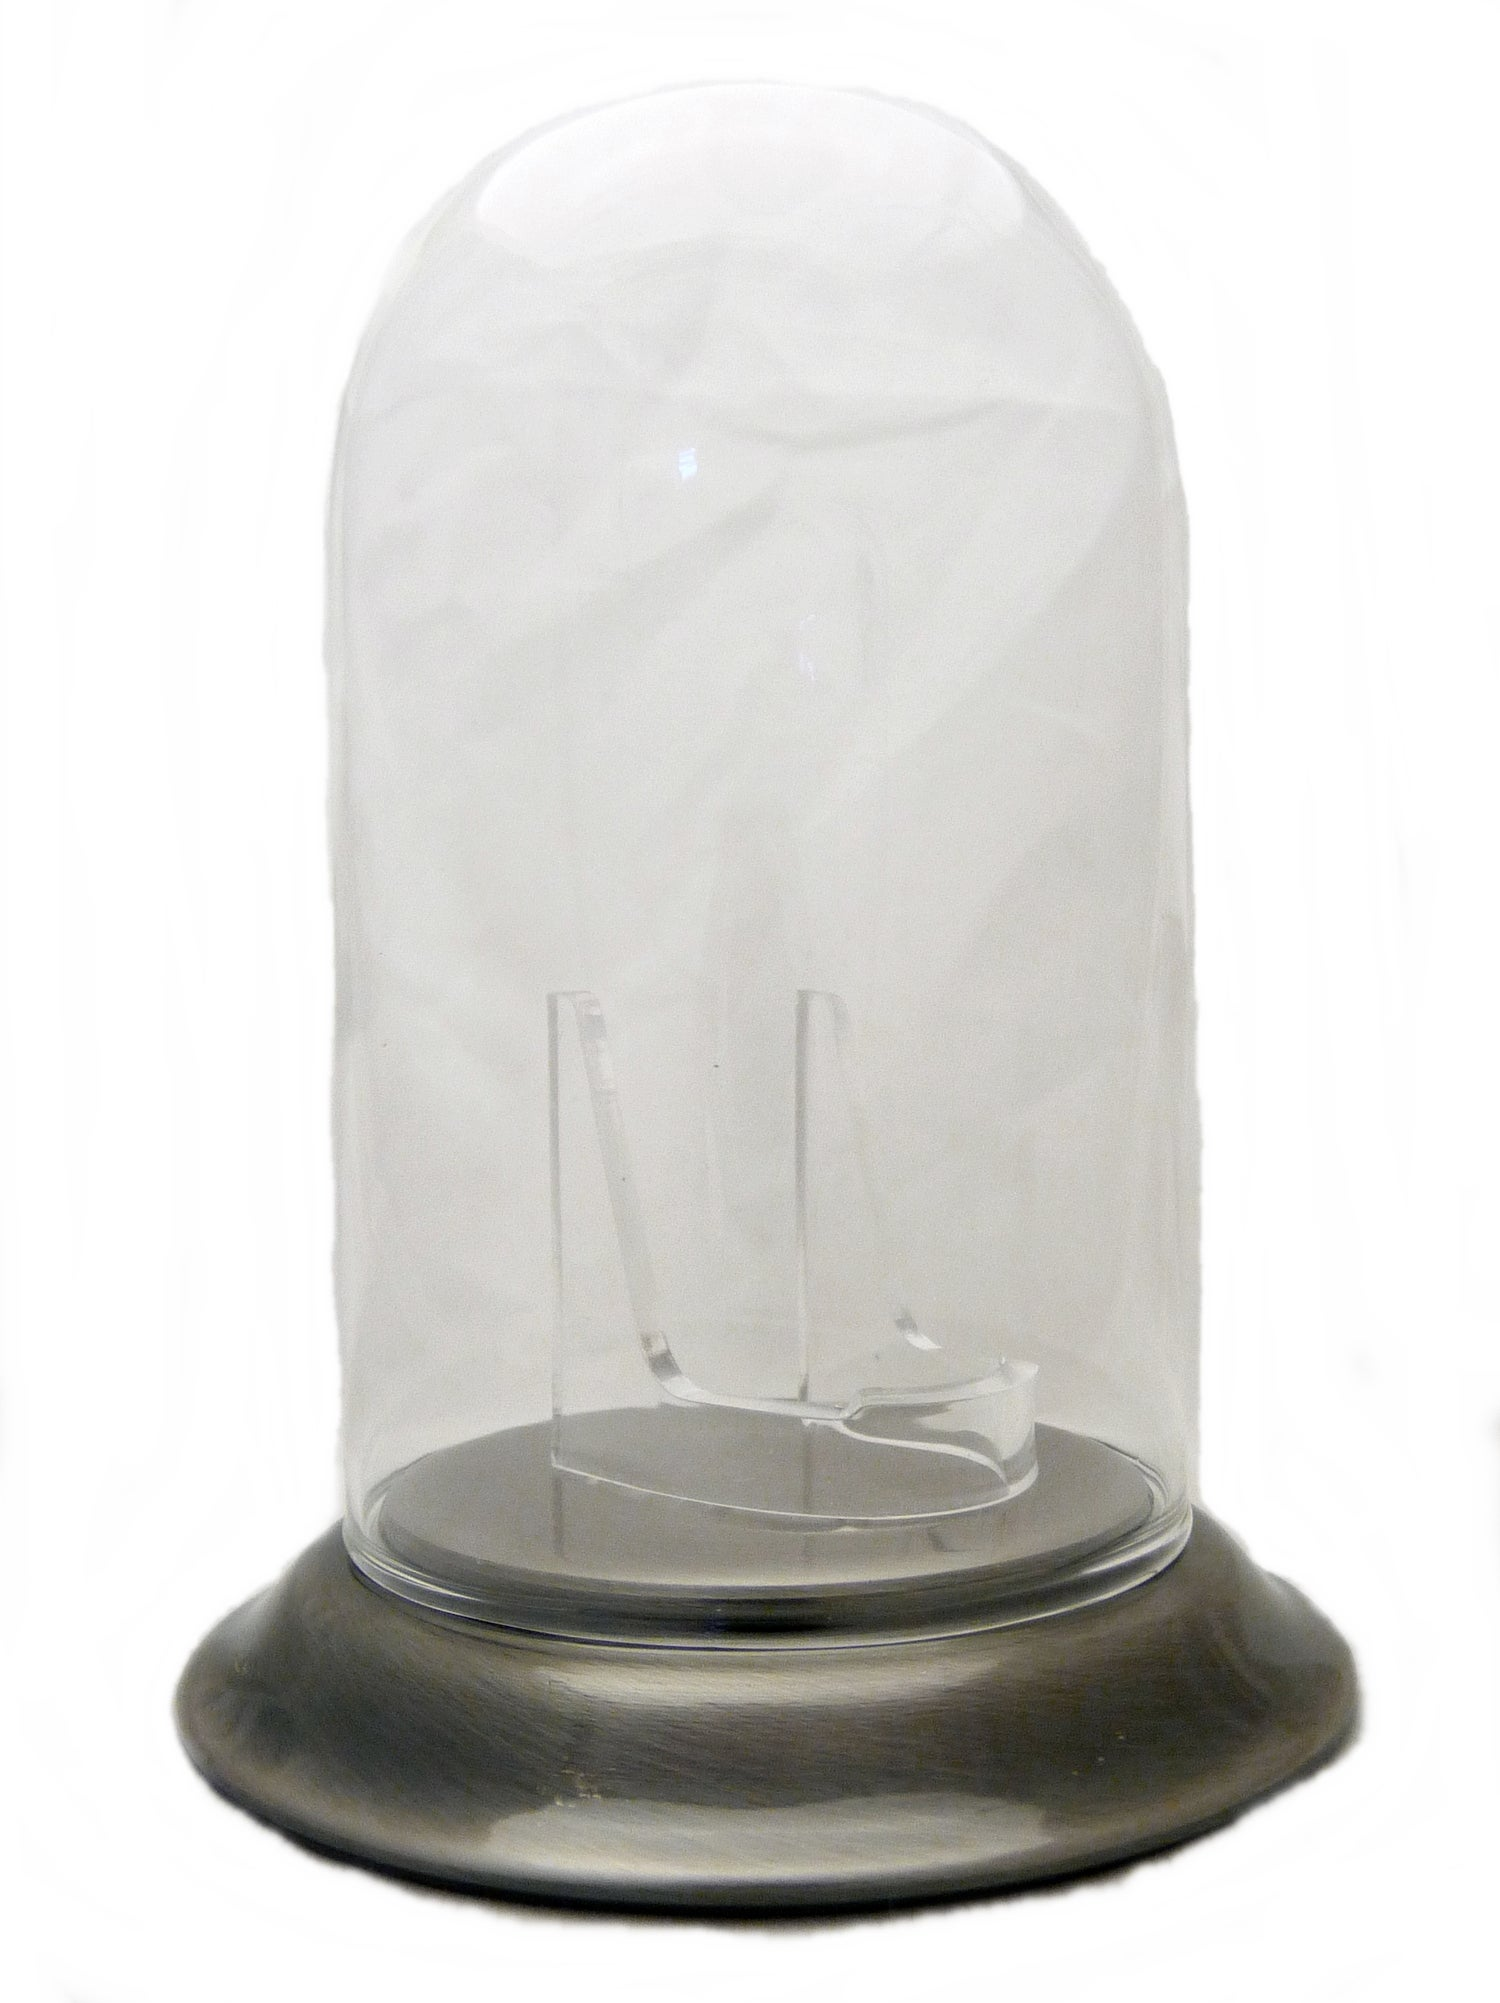 Image of Dueber Pocket Watch Glass Display Dome with Clear Stand, Chrome Silver Base 3″x5″ DBR238-30PT